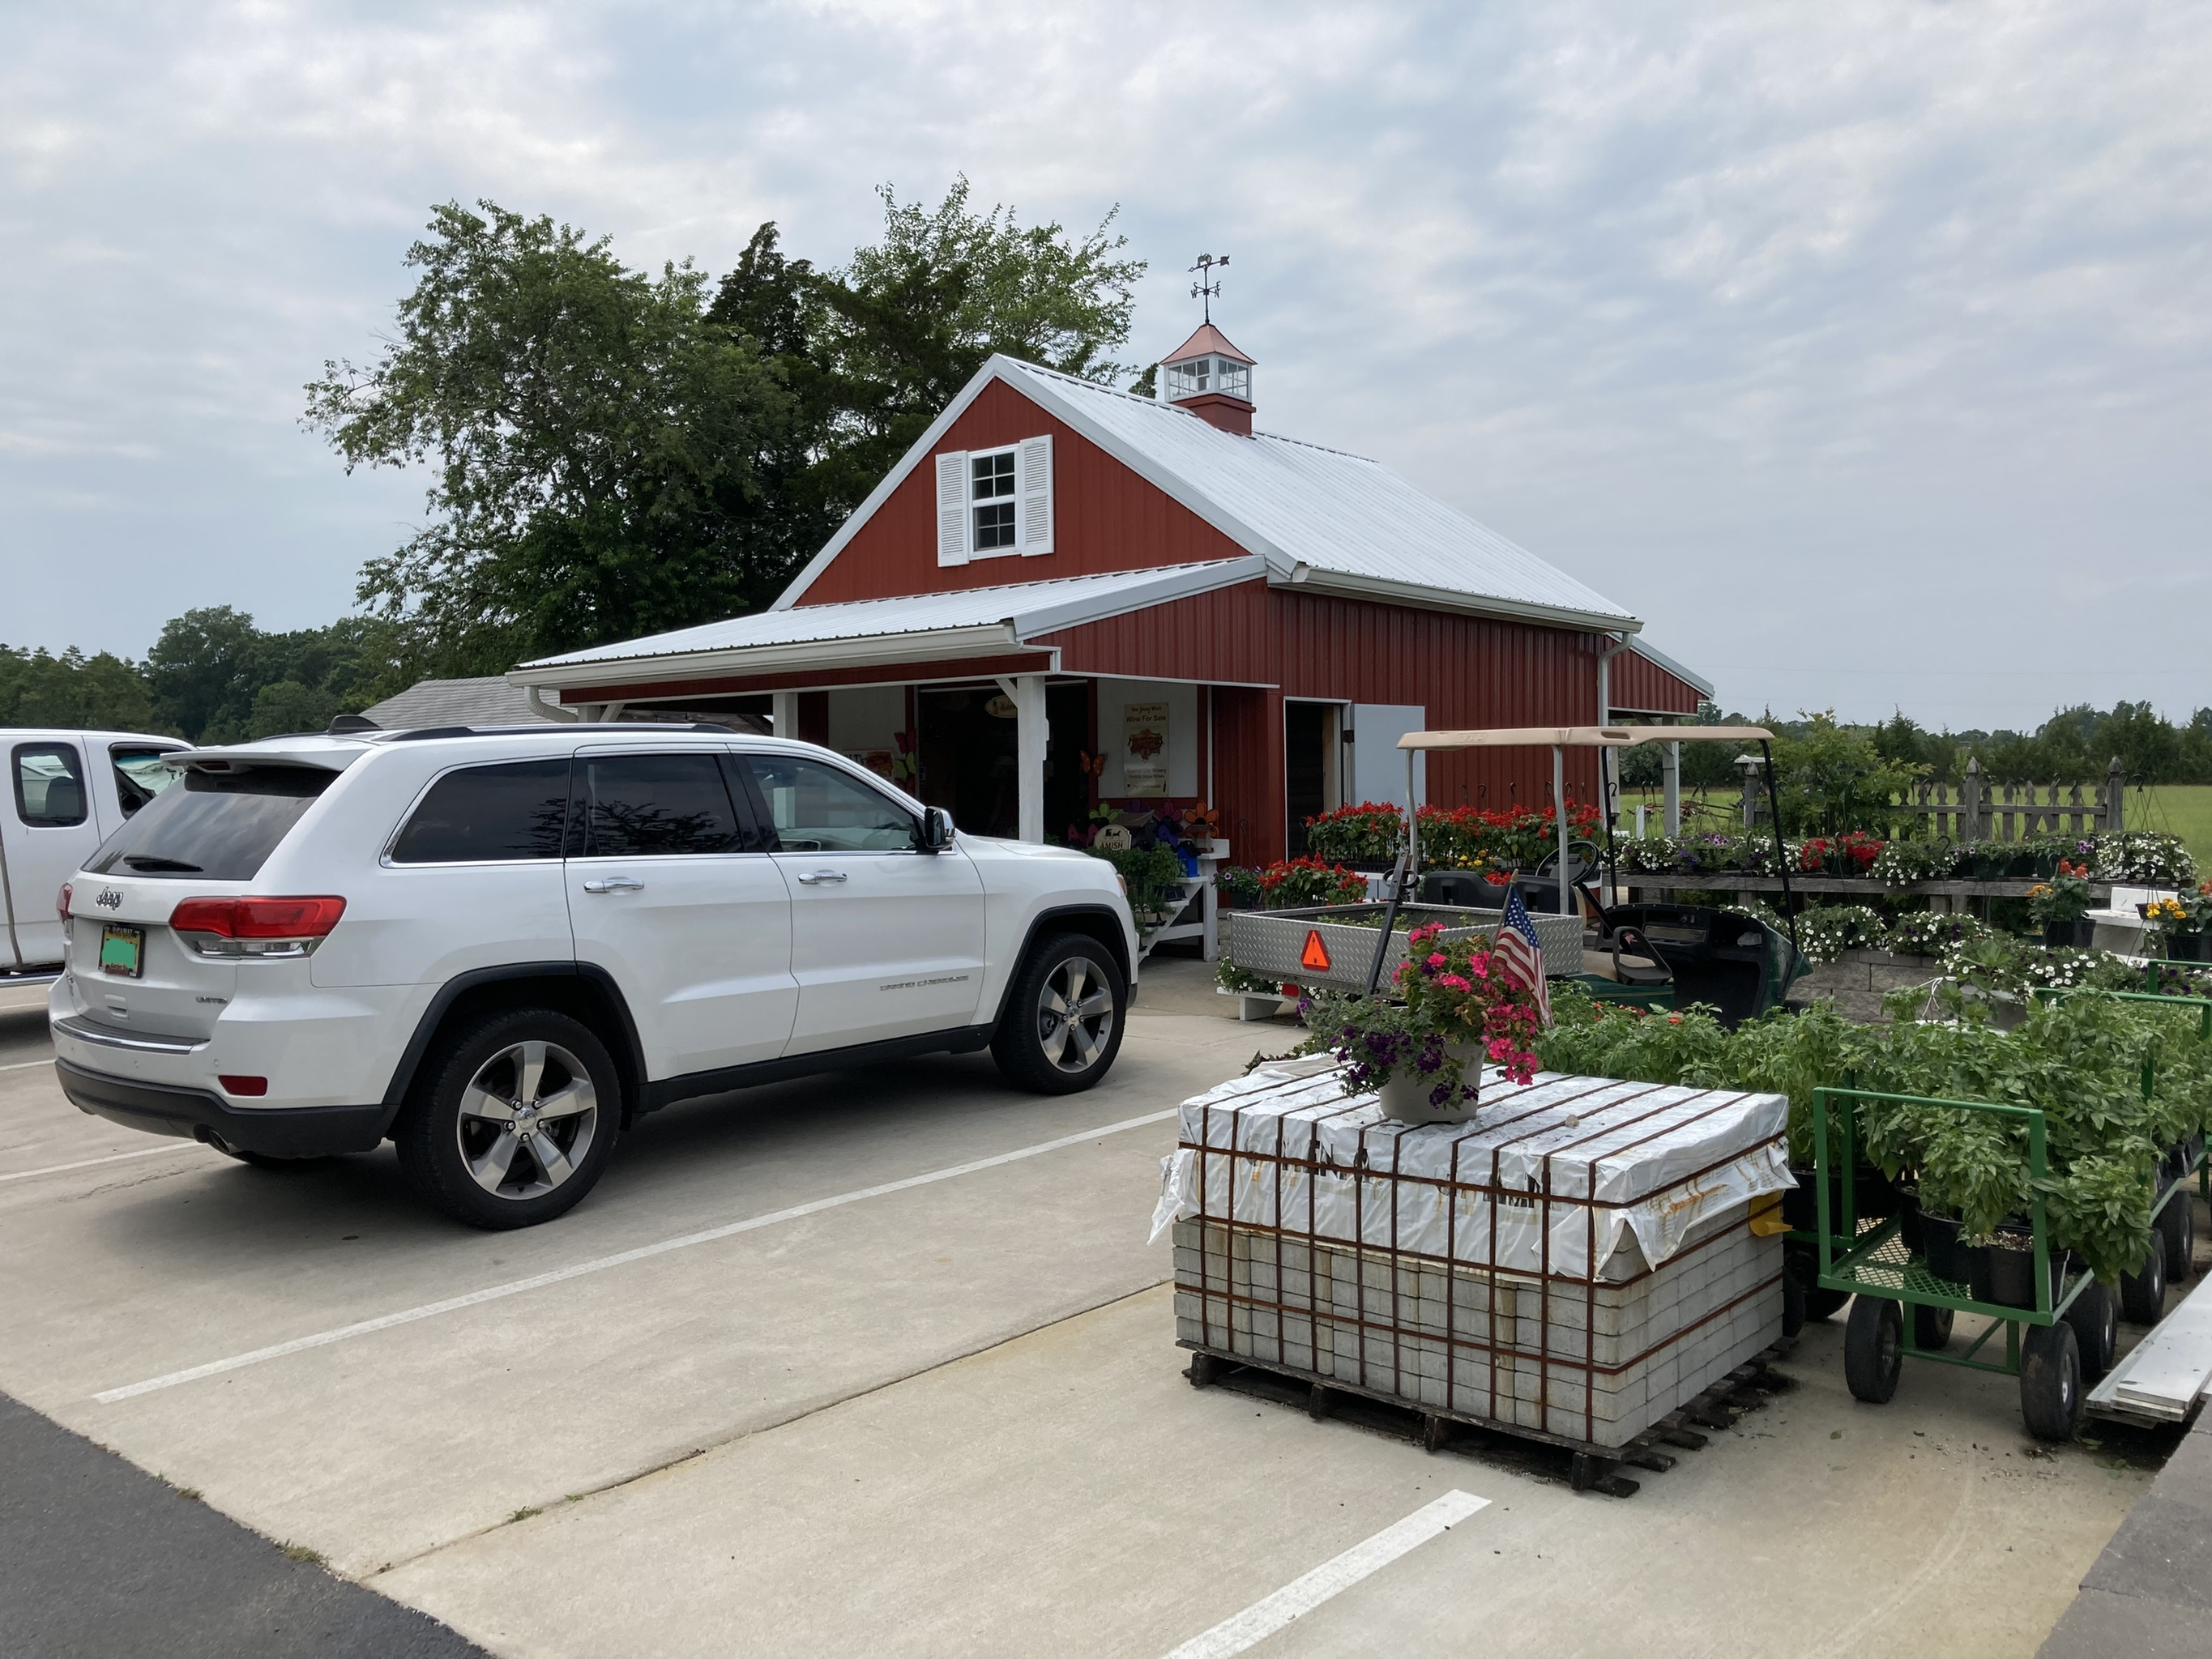 White Jeep Grand Cherokee, parked in front of farm stand.